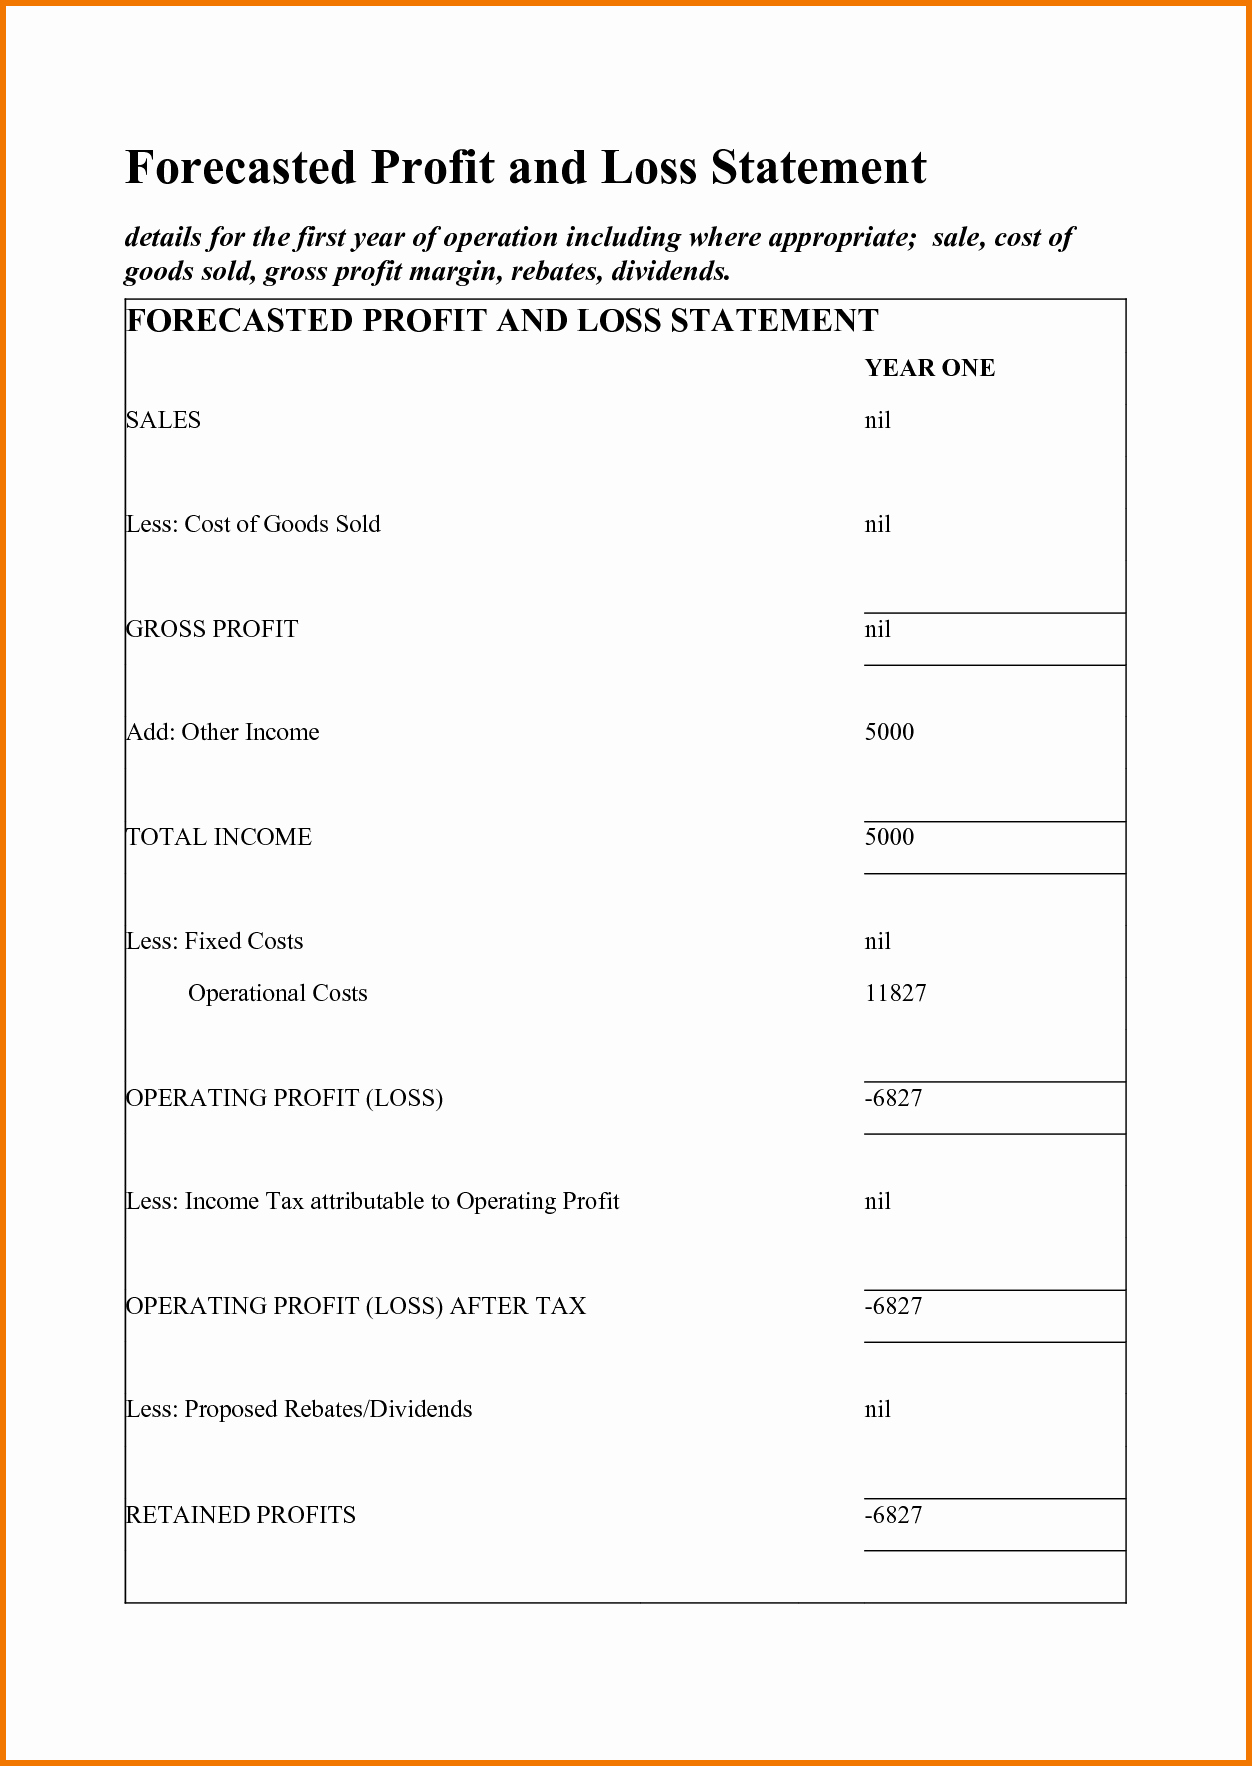 Personal Profit and Loss Template Inspirational Free Profit and Loss Template for Self Employed